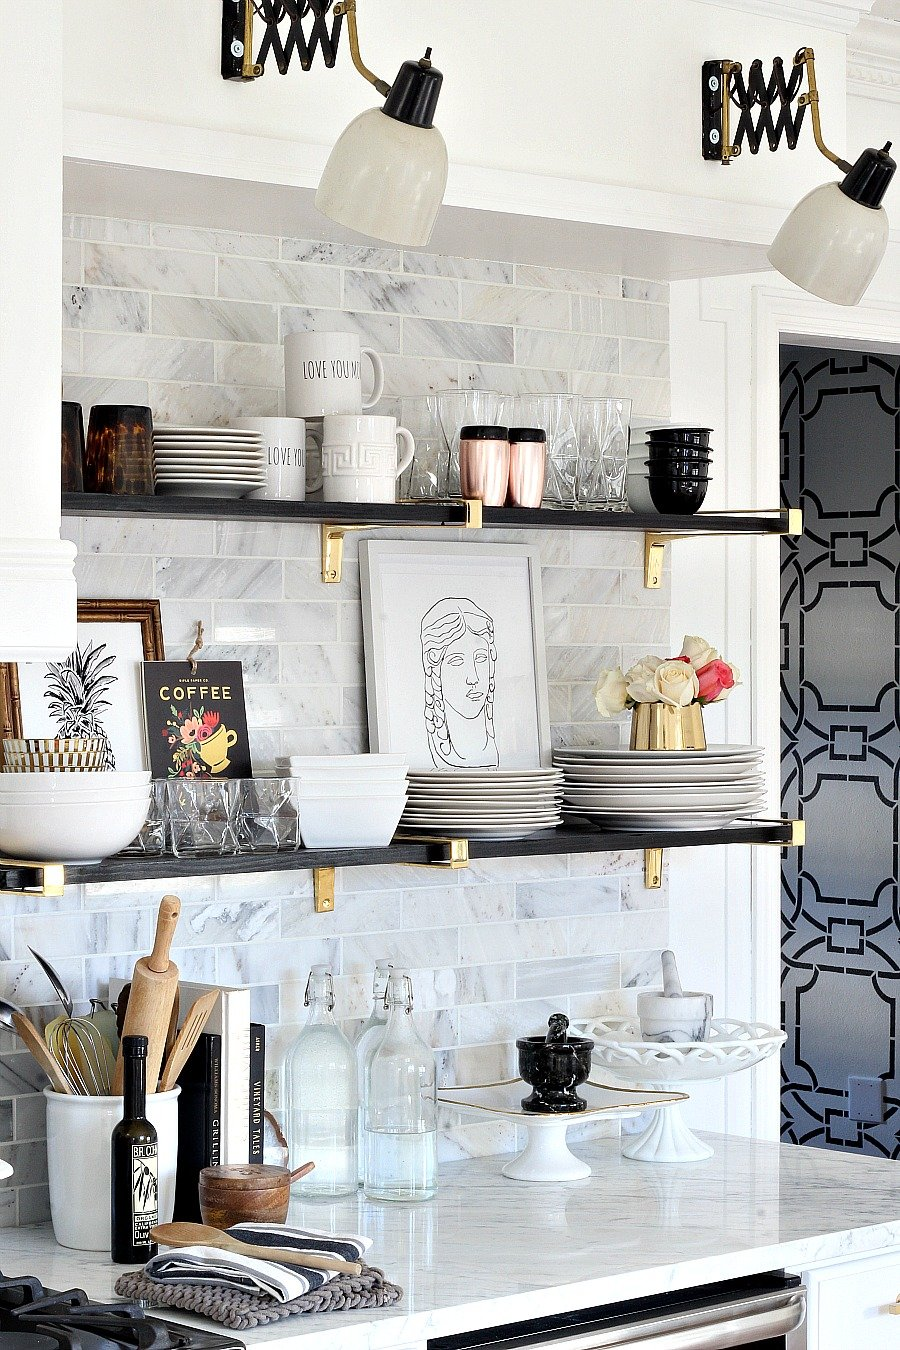 Floating Shelf Ideas Designed by KristinCadwallader of bliss-athome.com